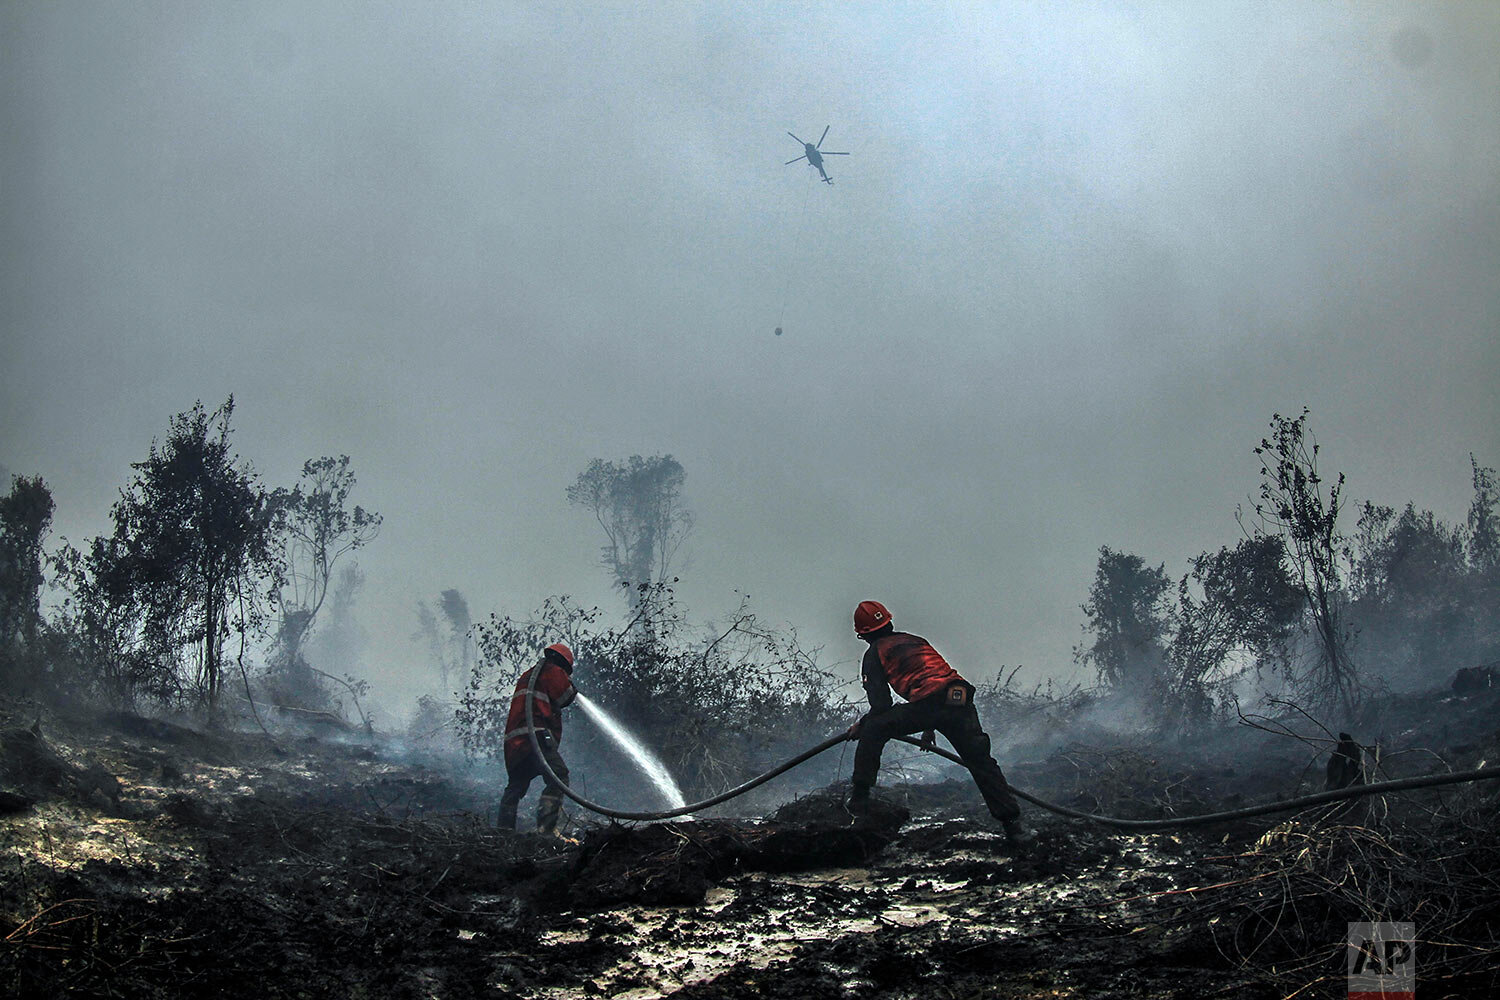 Firefighters spray water on the embers of a forest fire in Kampar, Riau province, Indonesia, Wednesday, Sept. 18, 2019. Fires have razed hundreds of thousands of hectares of land in Sumatra and Borneo island, spreading a thick, noxious haze around Southeast Asia. (AP Photo/Rafka Majjid)